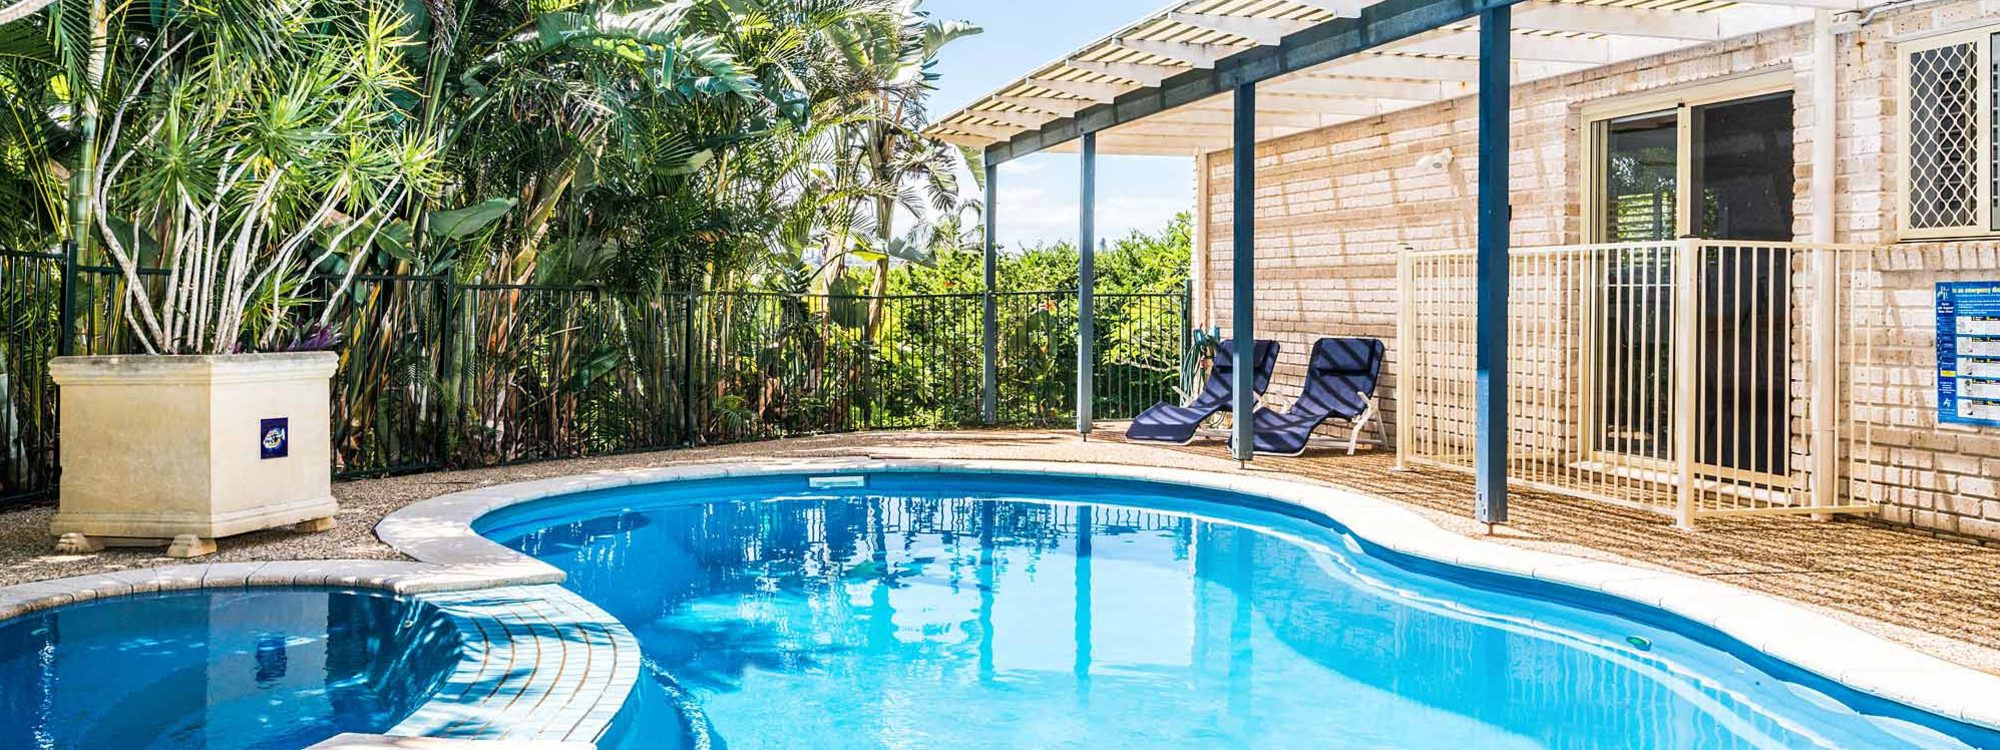 Boulders Retreat - Lennox Head - Pool and House